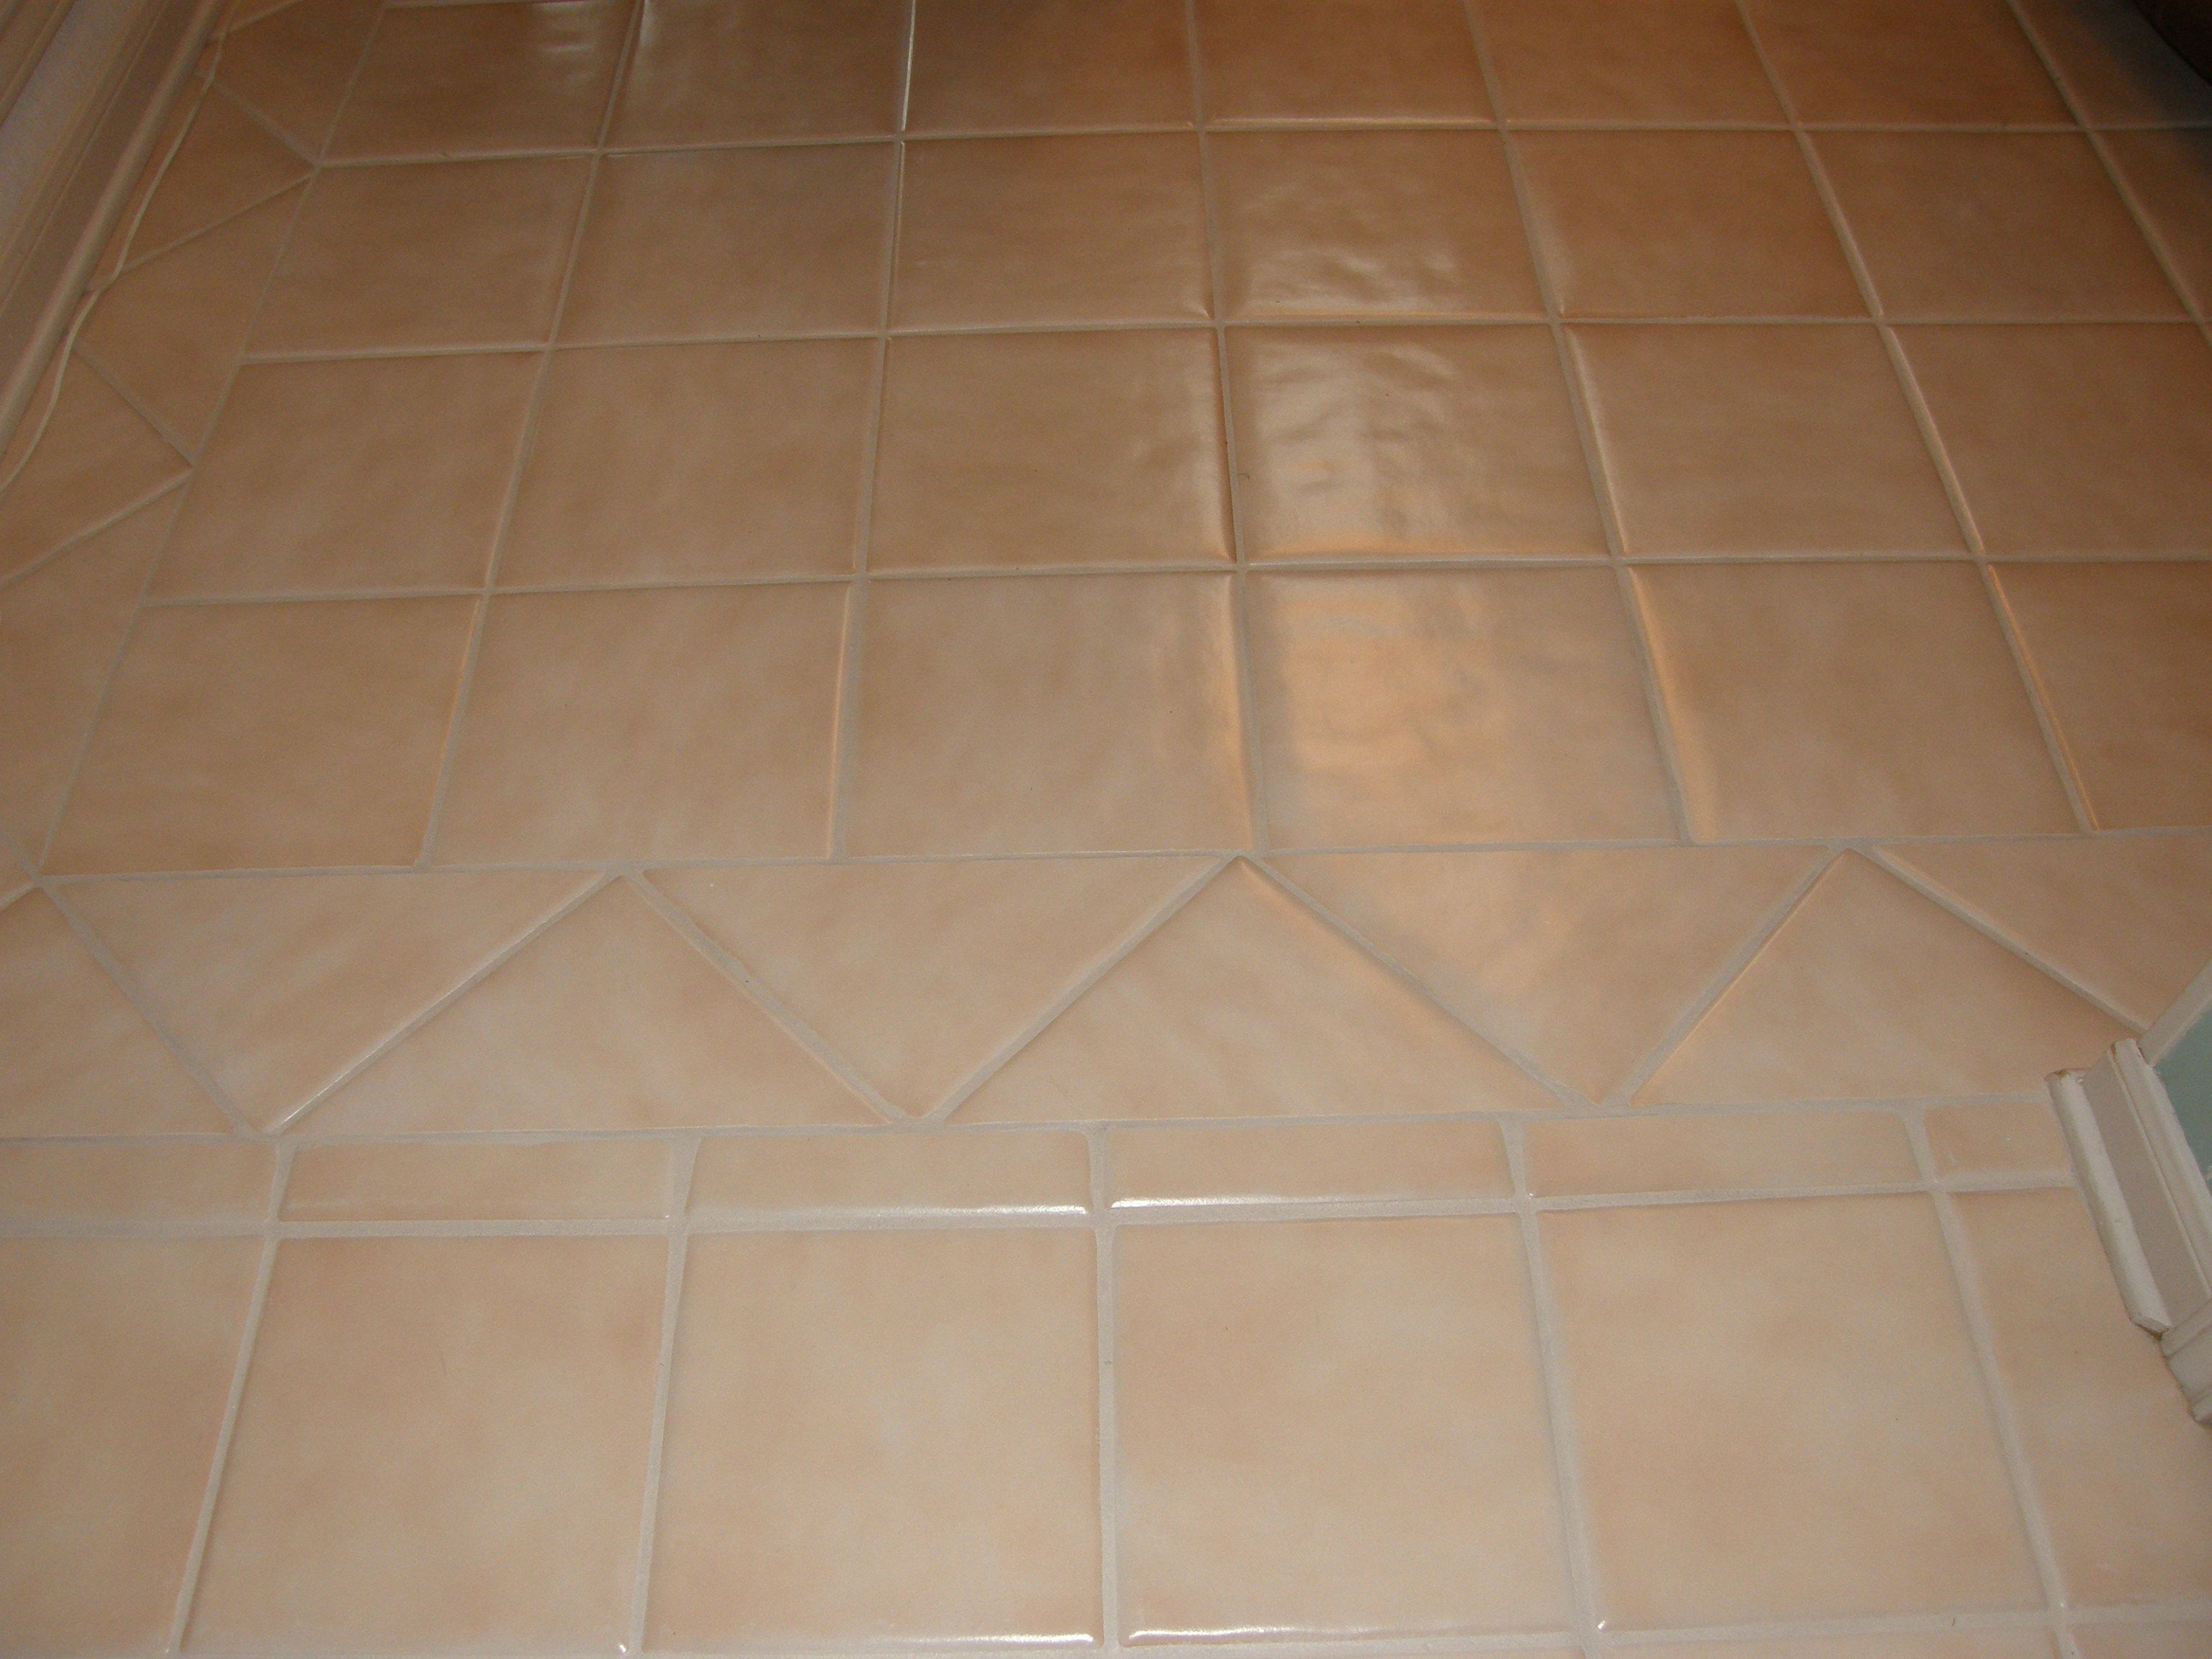 Grout Color Sealer (With images) Sealing grout, Tile